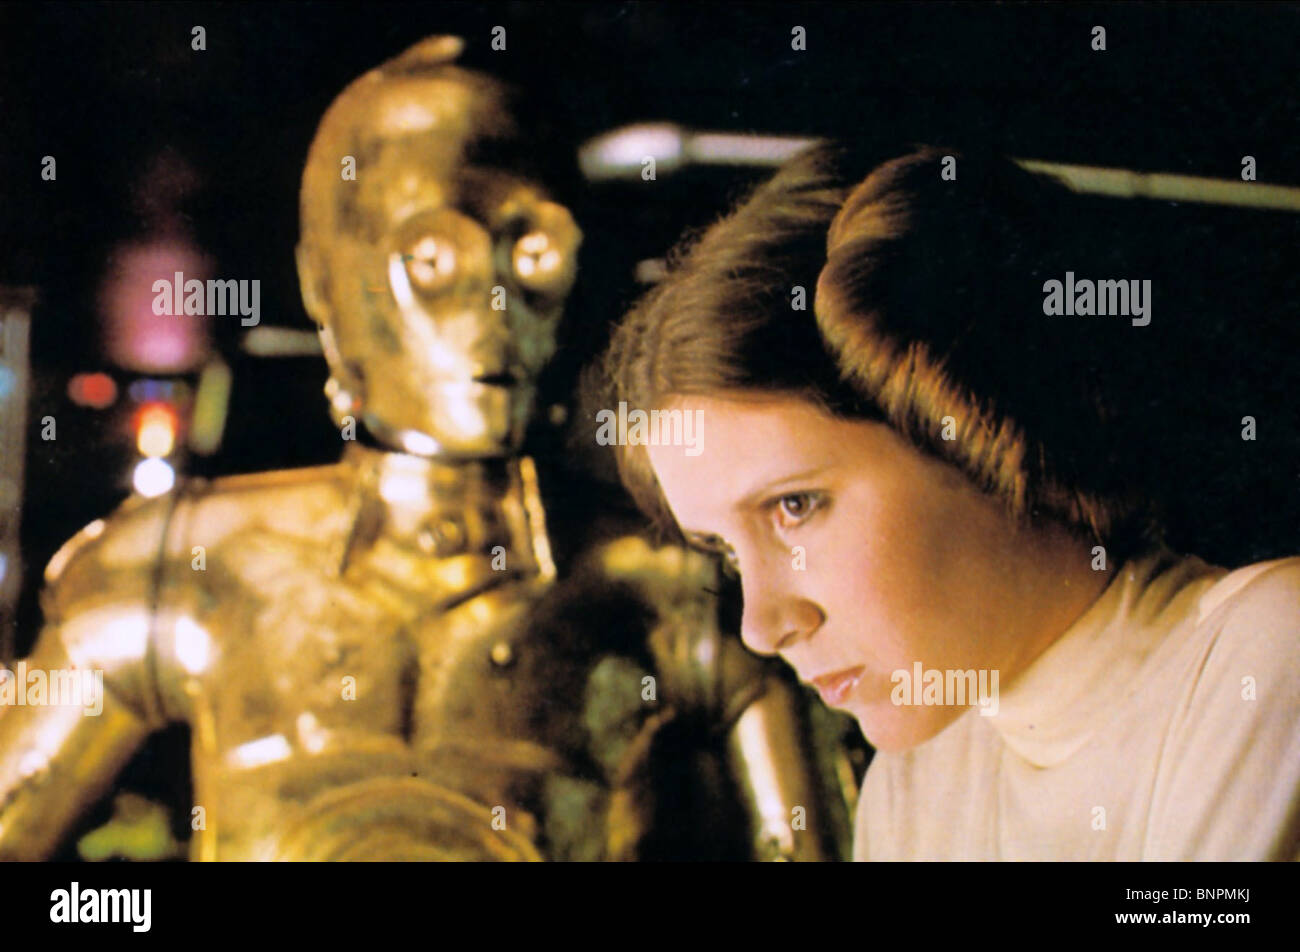 ANTHONY DANIELS & CARRIE FISHER STAR WARS: EPISODE IV - A NEW HOPE (1977) - Stock Image